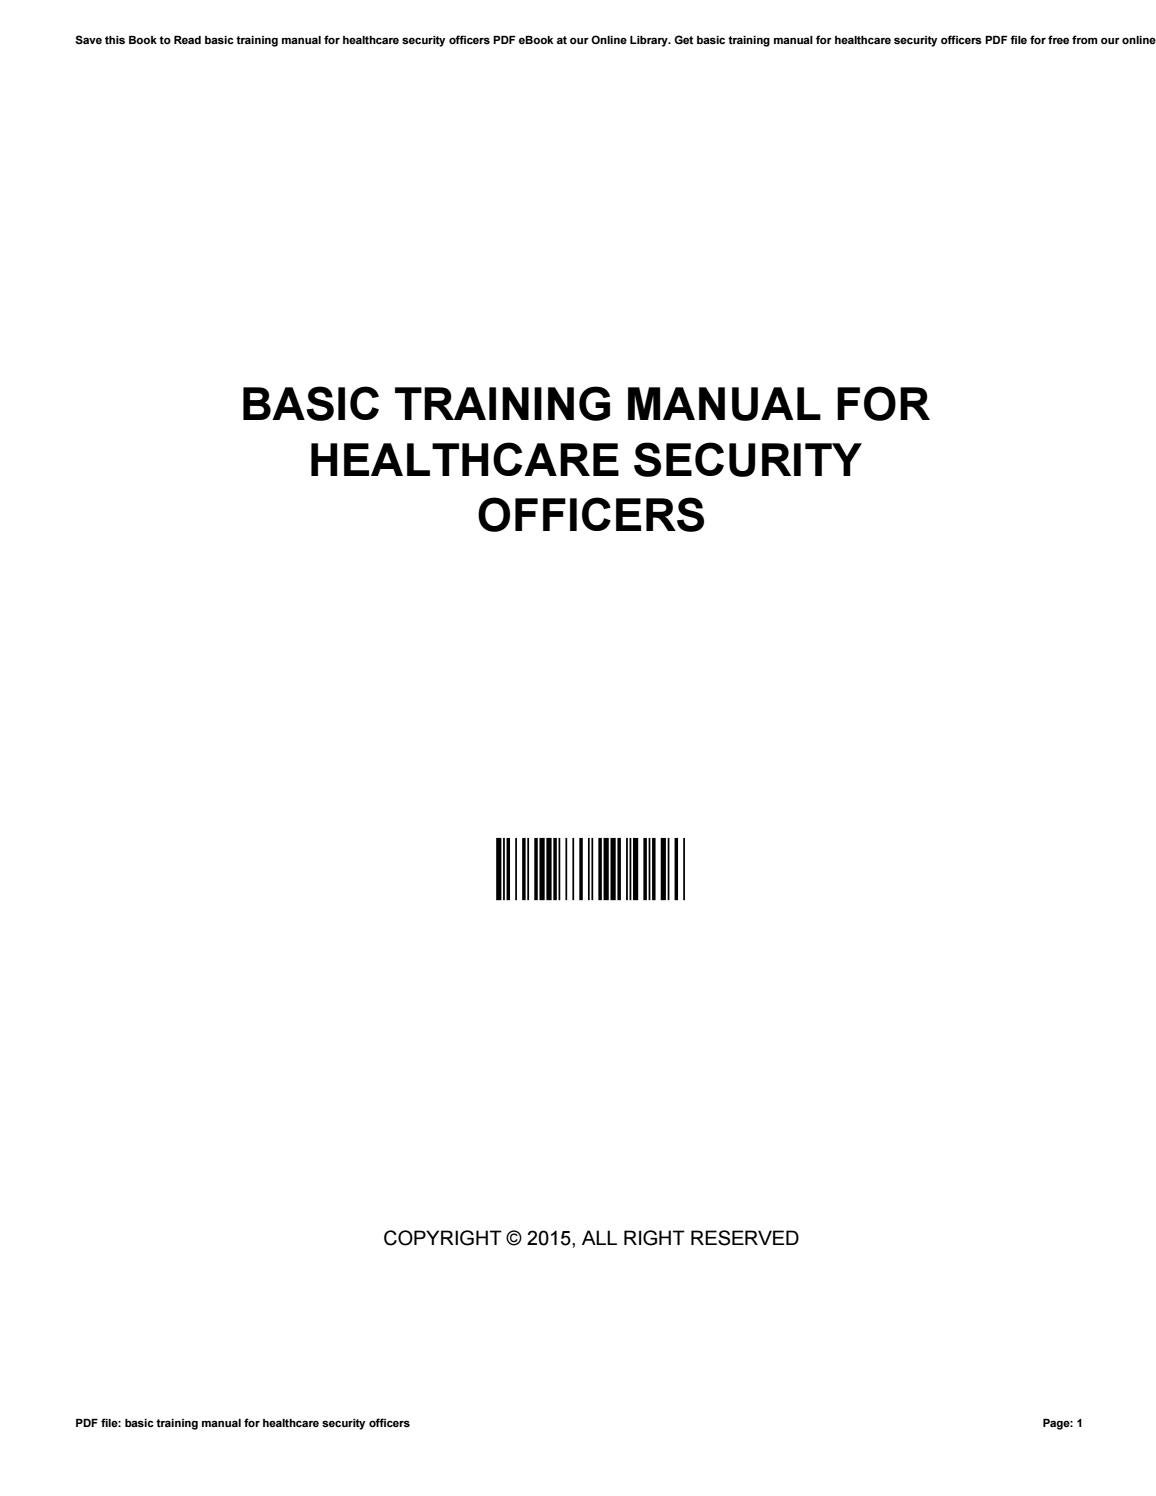 basic surveillance course training manual pdf